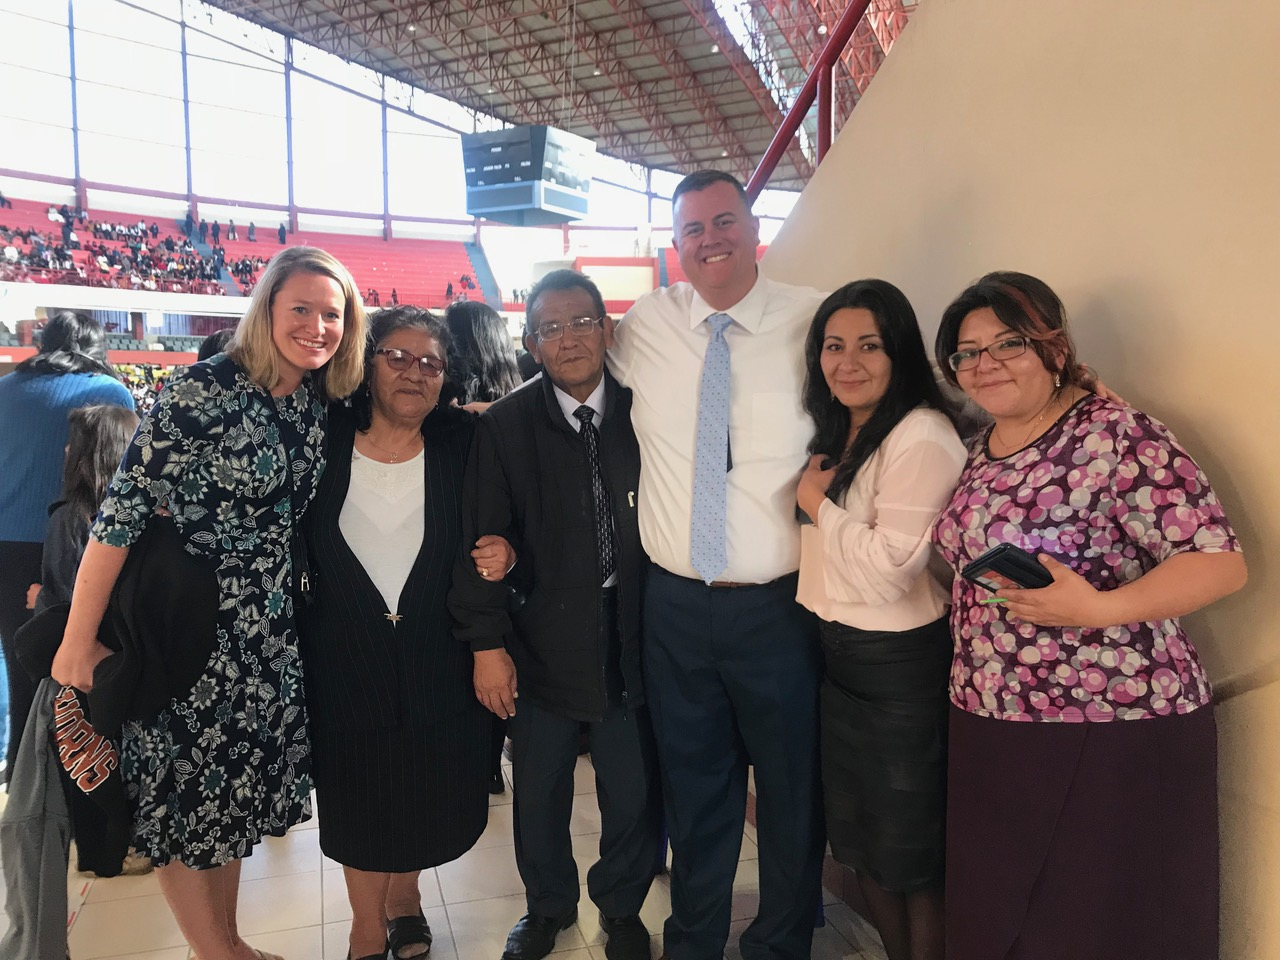 Celestino Orellana and Tommy Upshaw (center) with their families when they reunited at the Polideportivo Heroes de Octubre in El Alto on Sunday, Oct. 21 at the fireside where President Nelson spoke.